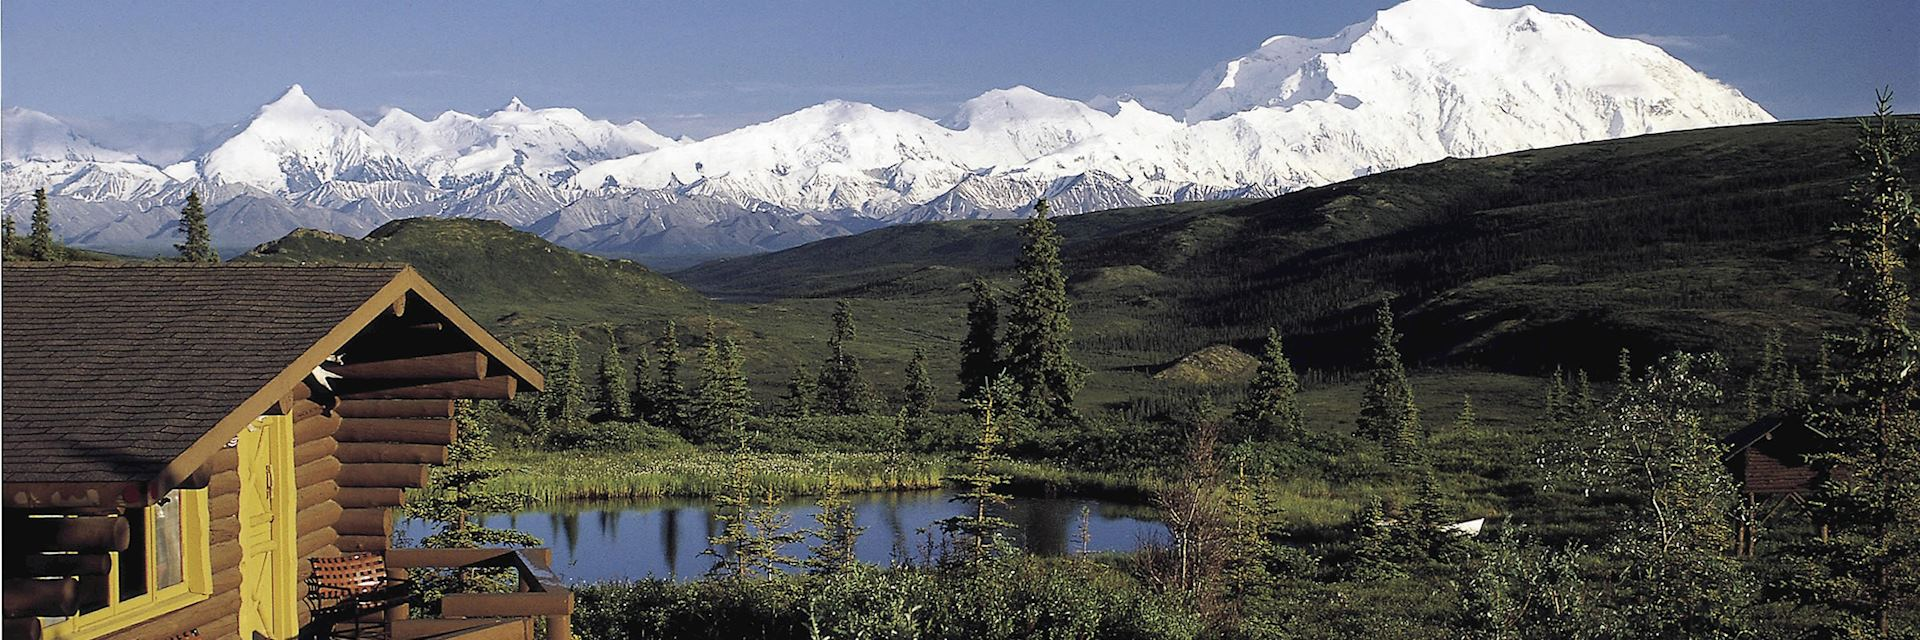 Camp Denali, Denali National Park, Alaska